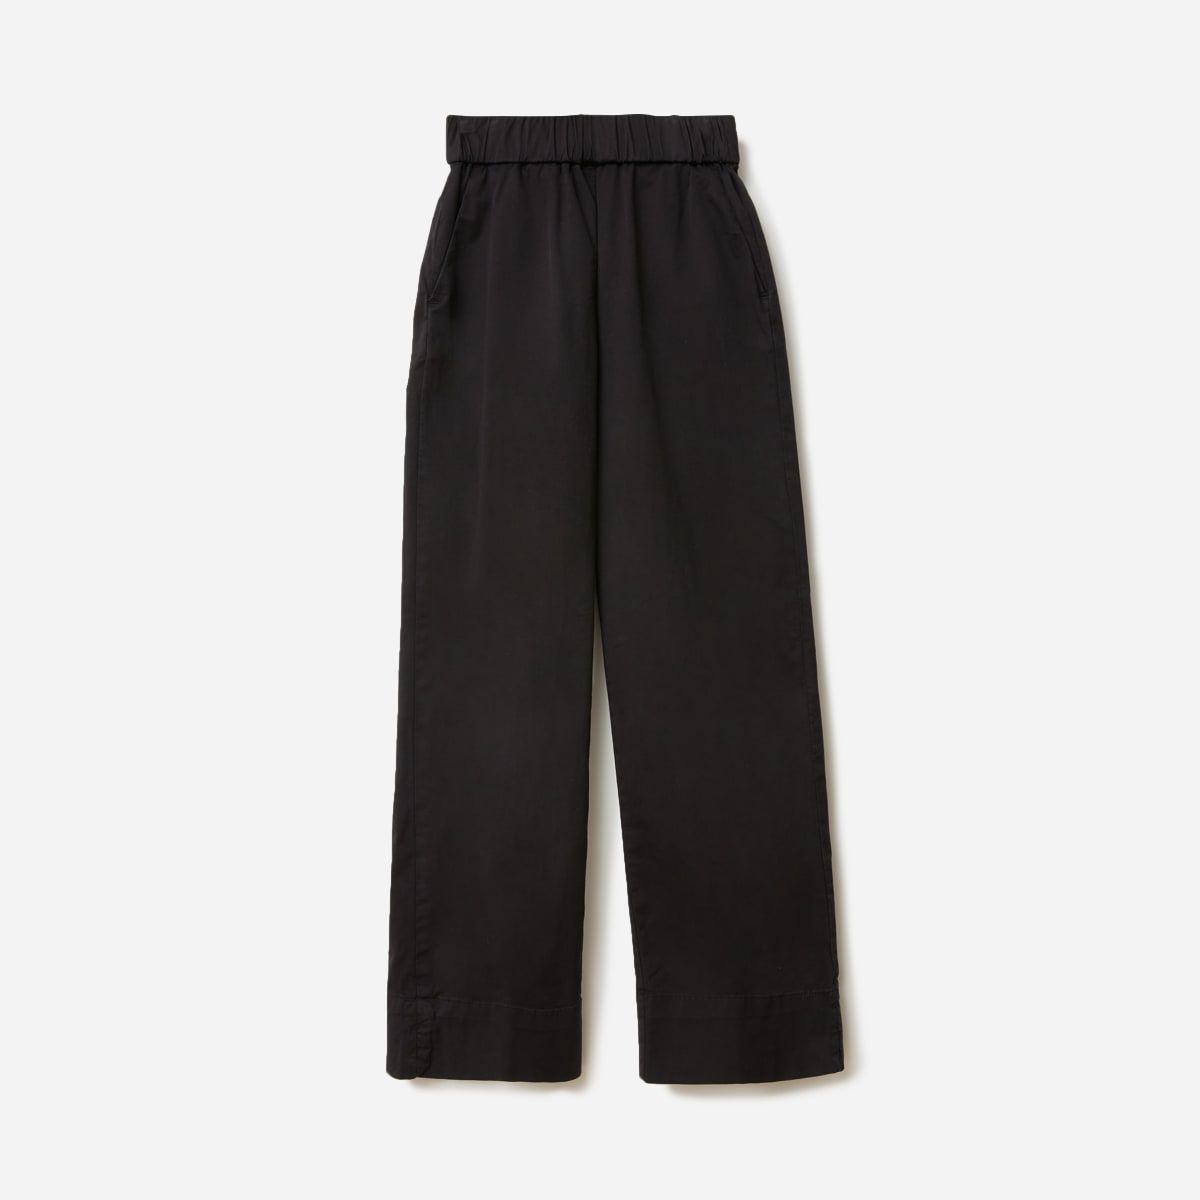 Everlane The Easy Pant